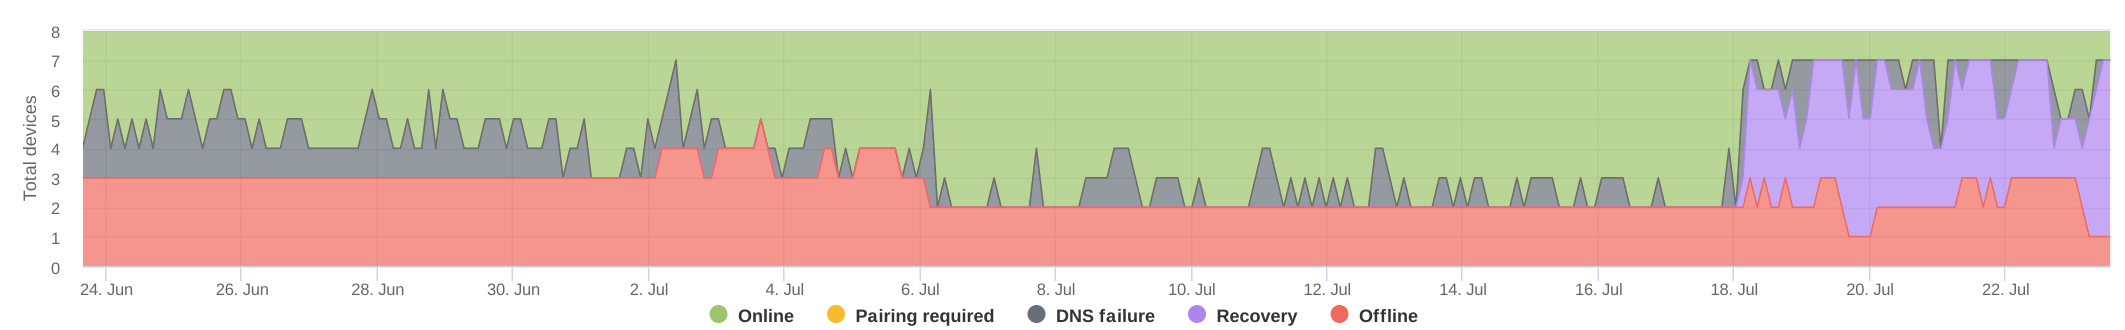 network-outages.png